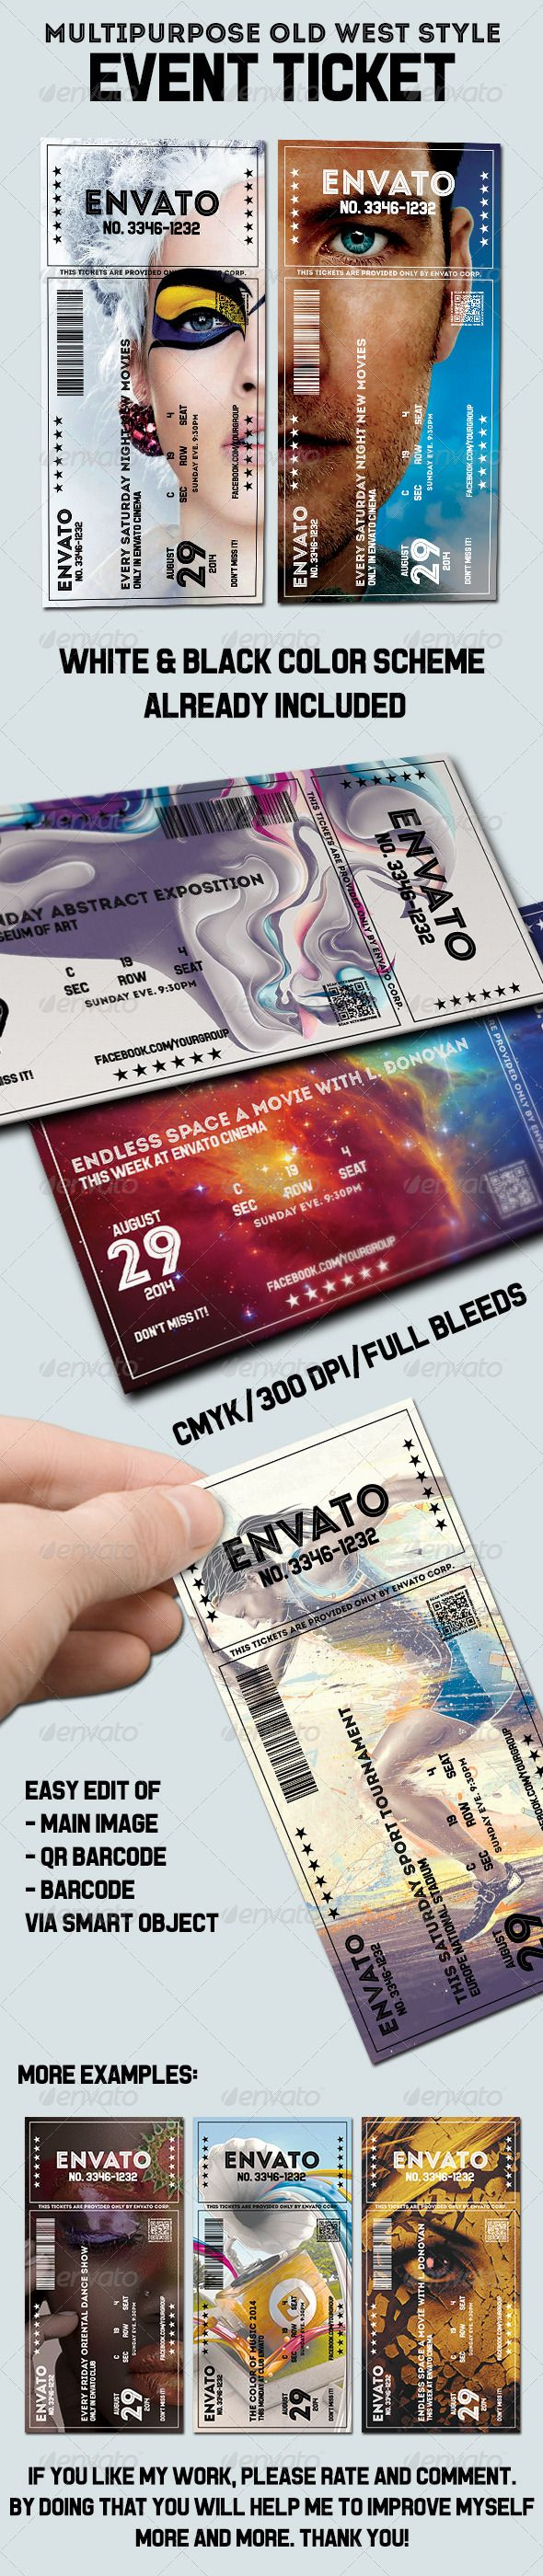 Elegant multipurpose event ticket Templates PSD | Buy and Download: http://graphicriver.net/item/elegant-multipurpose-event-ticket/7800254?WT.ac=category_thumb&WT.z_author=Tzochko&ref=ksioks